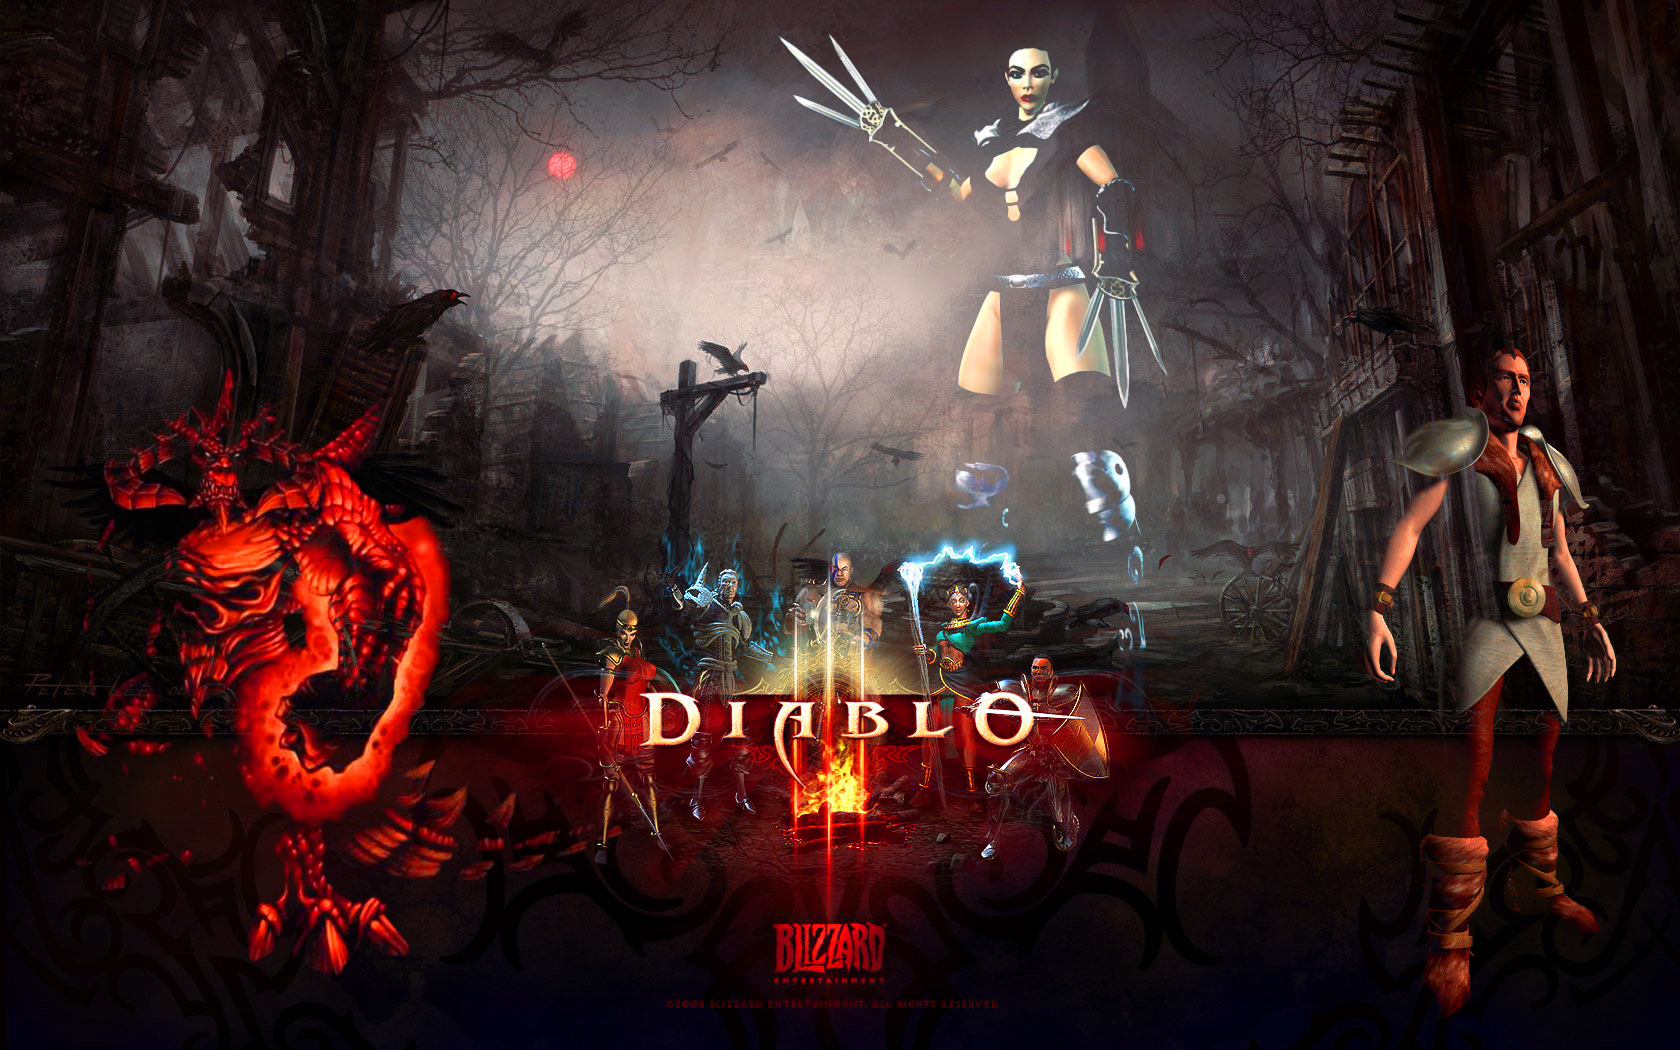 Diablo_II_wallpaper_by_Ishi